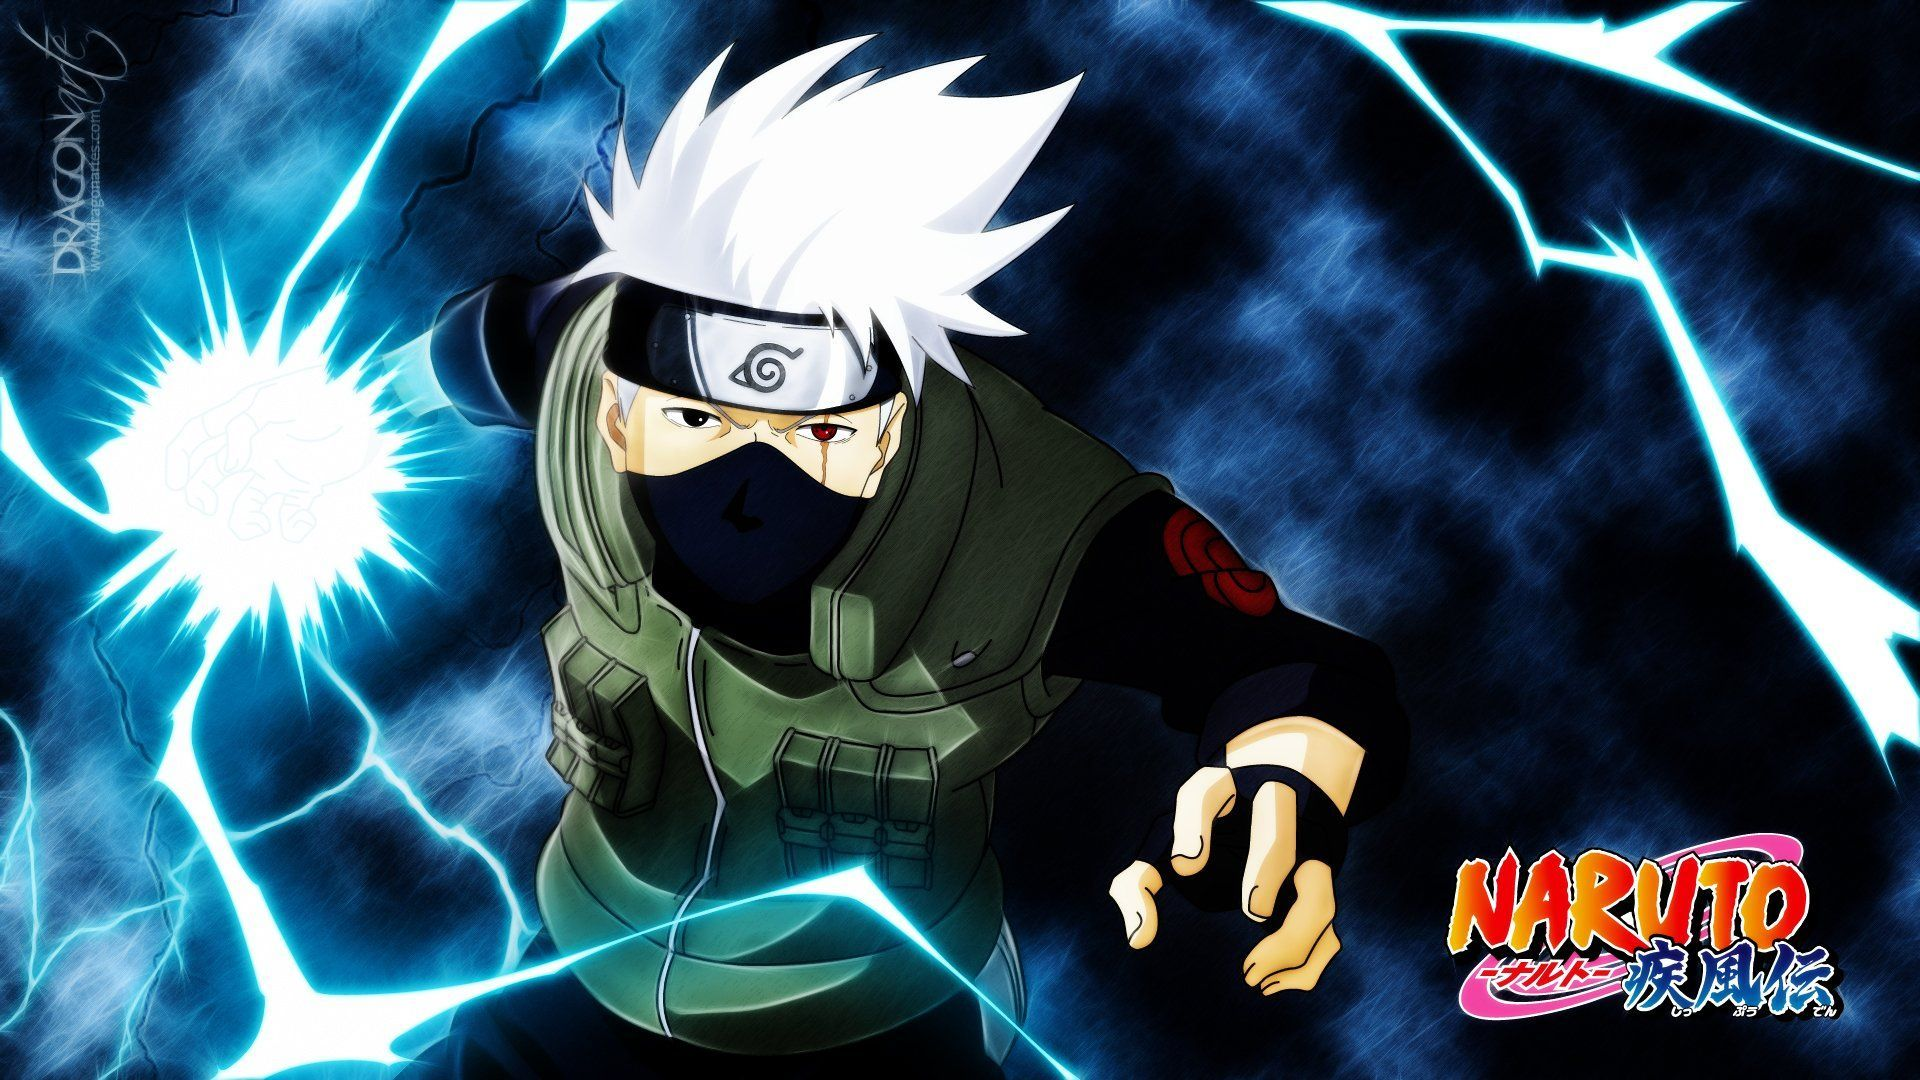 Naruto And Kakashi Wallpapers Top Free Naruto And Kakashi Backgrounds Wallpaperaccess